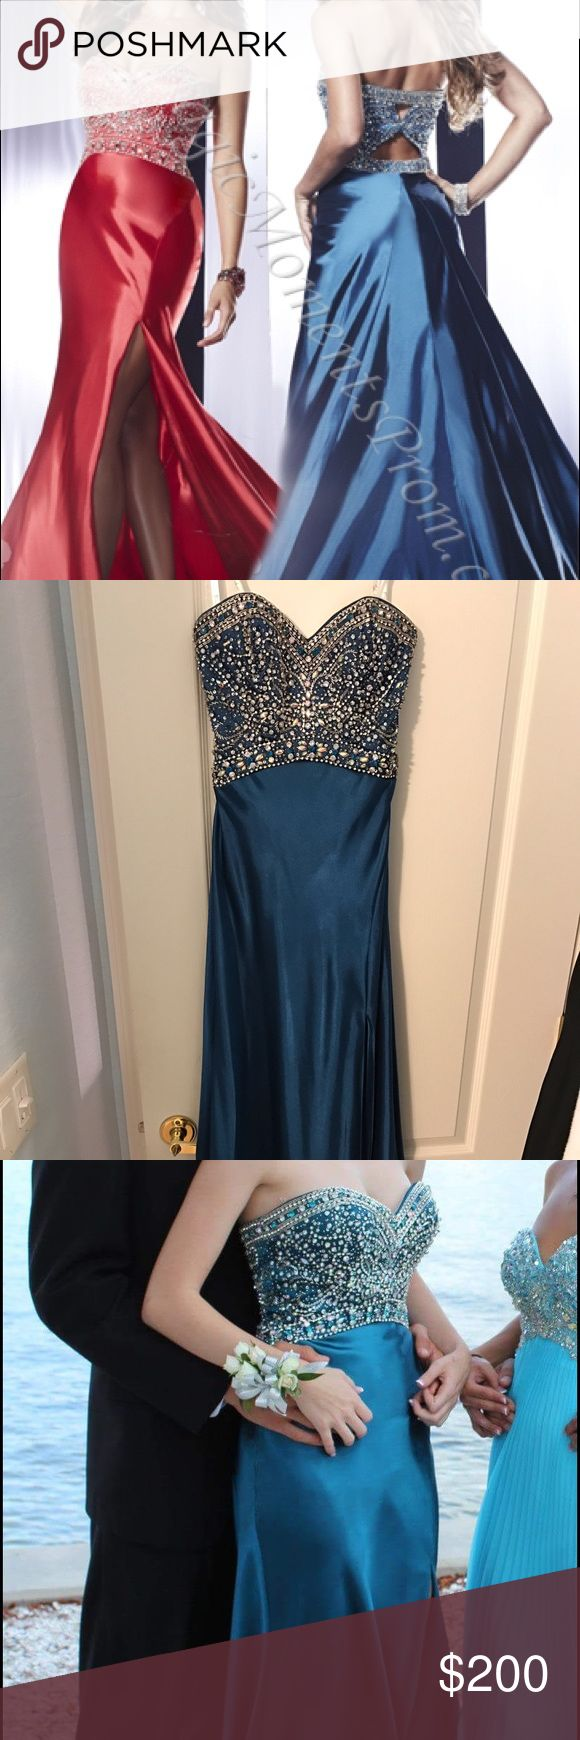 Panoply prom dress in blue Panoply prom dress style 14556. Small cutouts in the back. Slit on the left side. Hidden side zipper. Purchased from CC's Boutique. Worn once. No damages, stains, or missing beads. Excellent condition. Panoply Dresses Prom